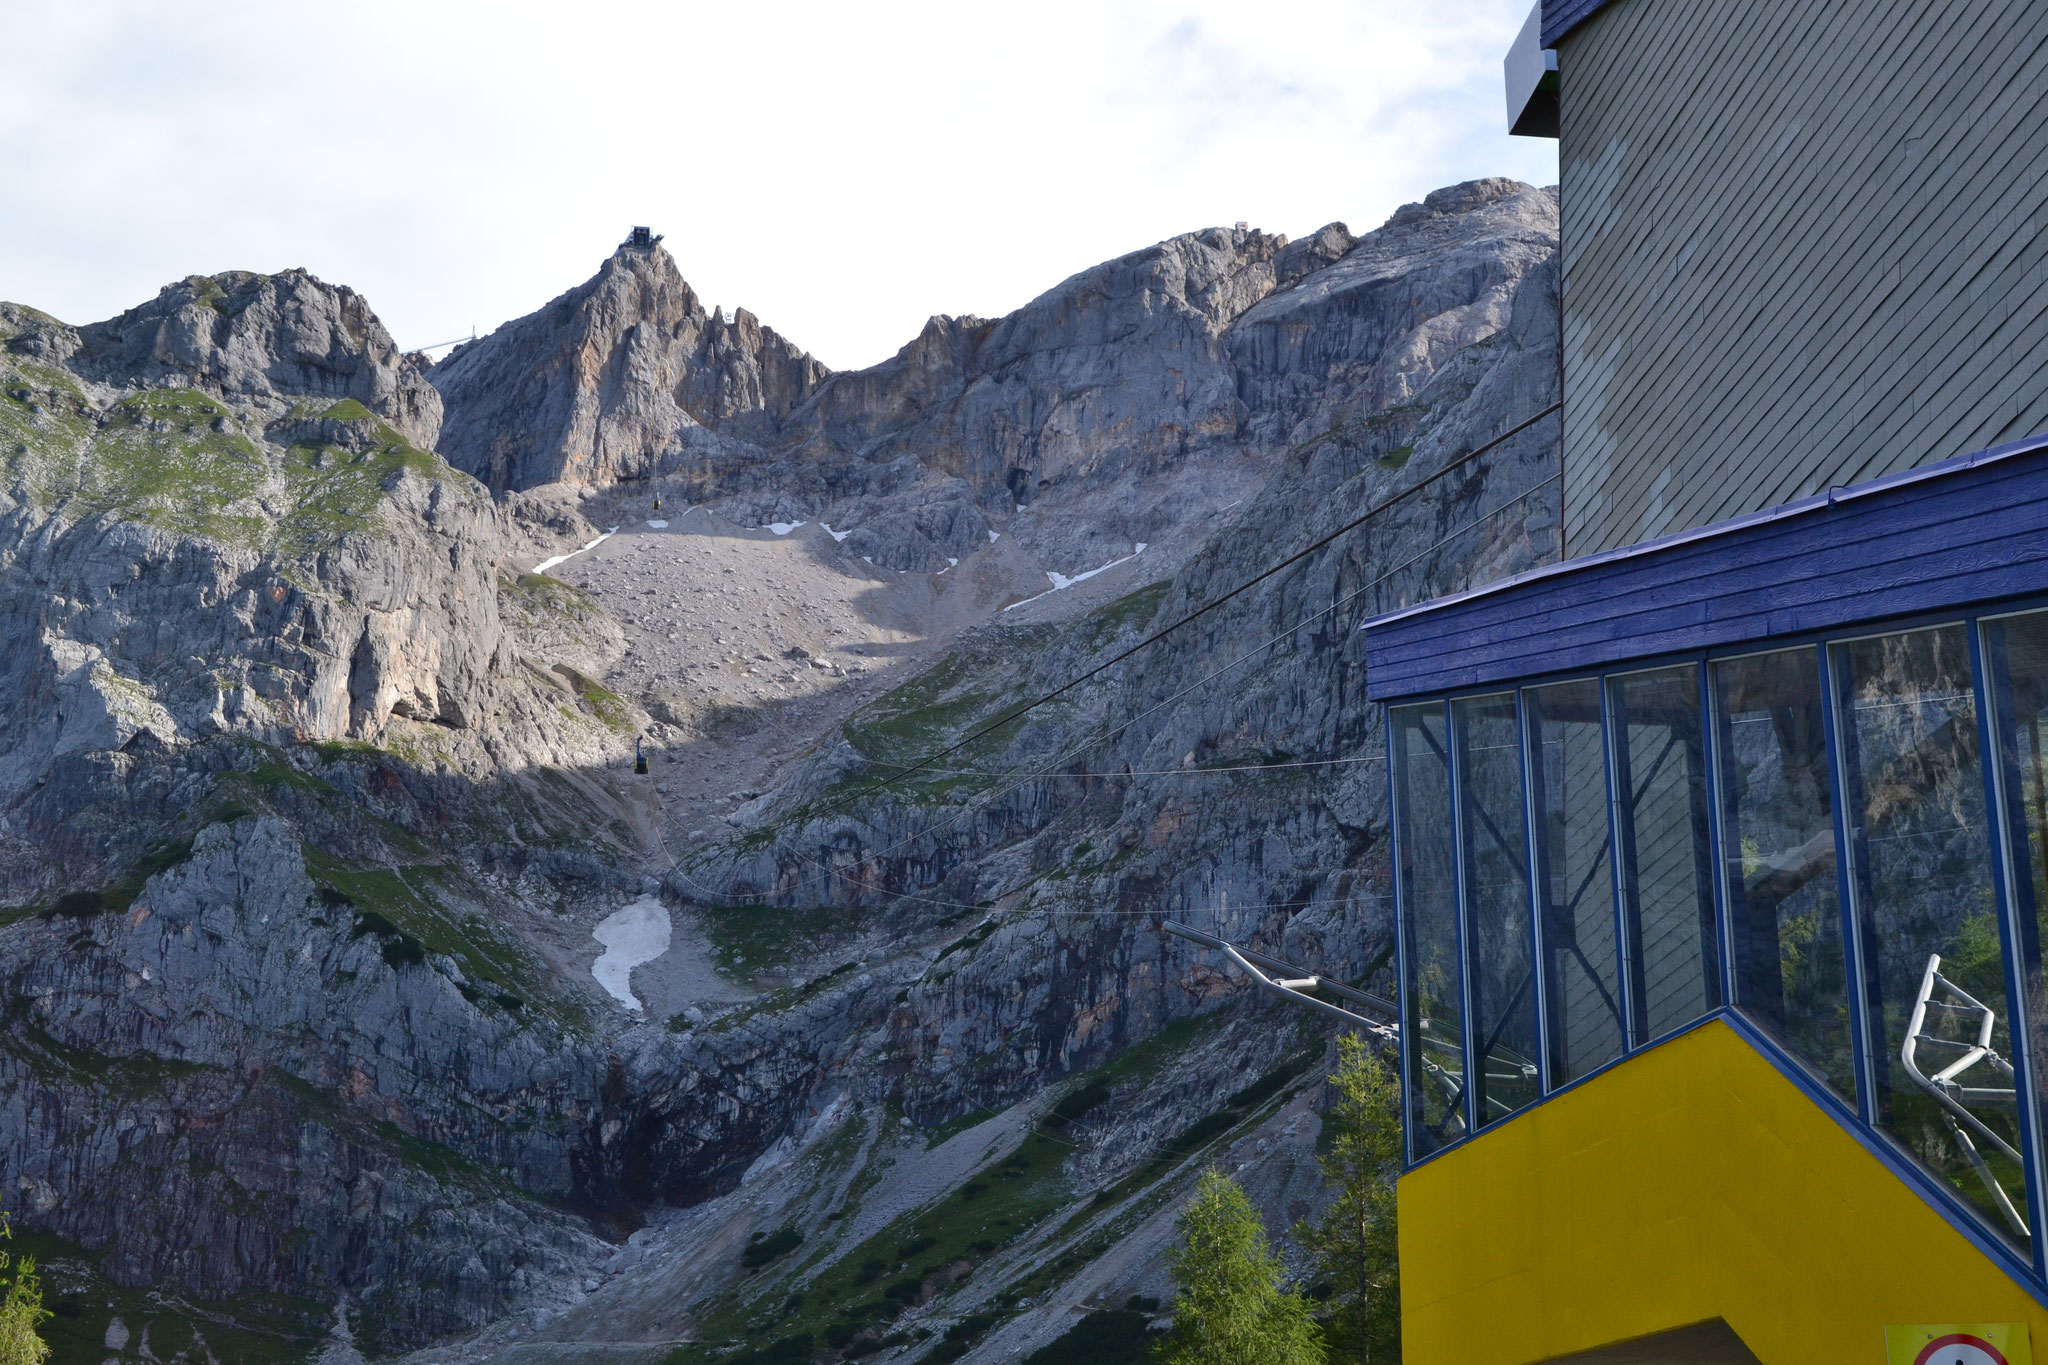 The Dachstein cablecar and top station at 2700m